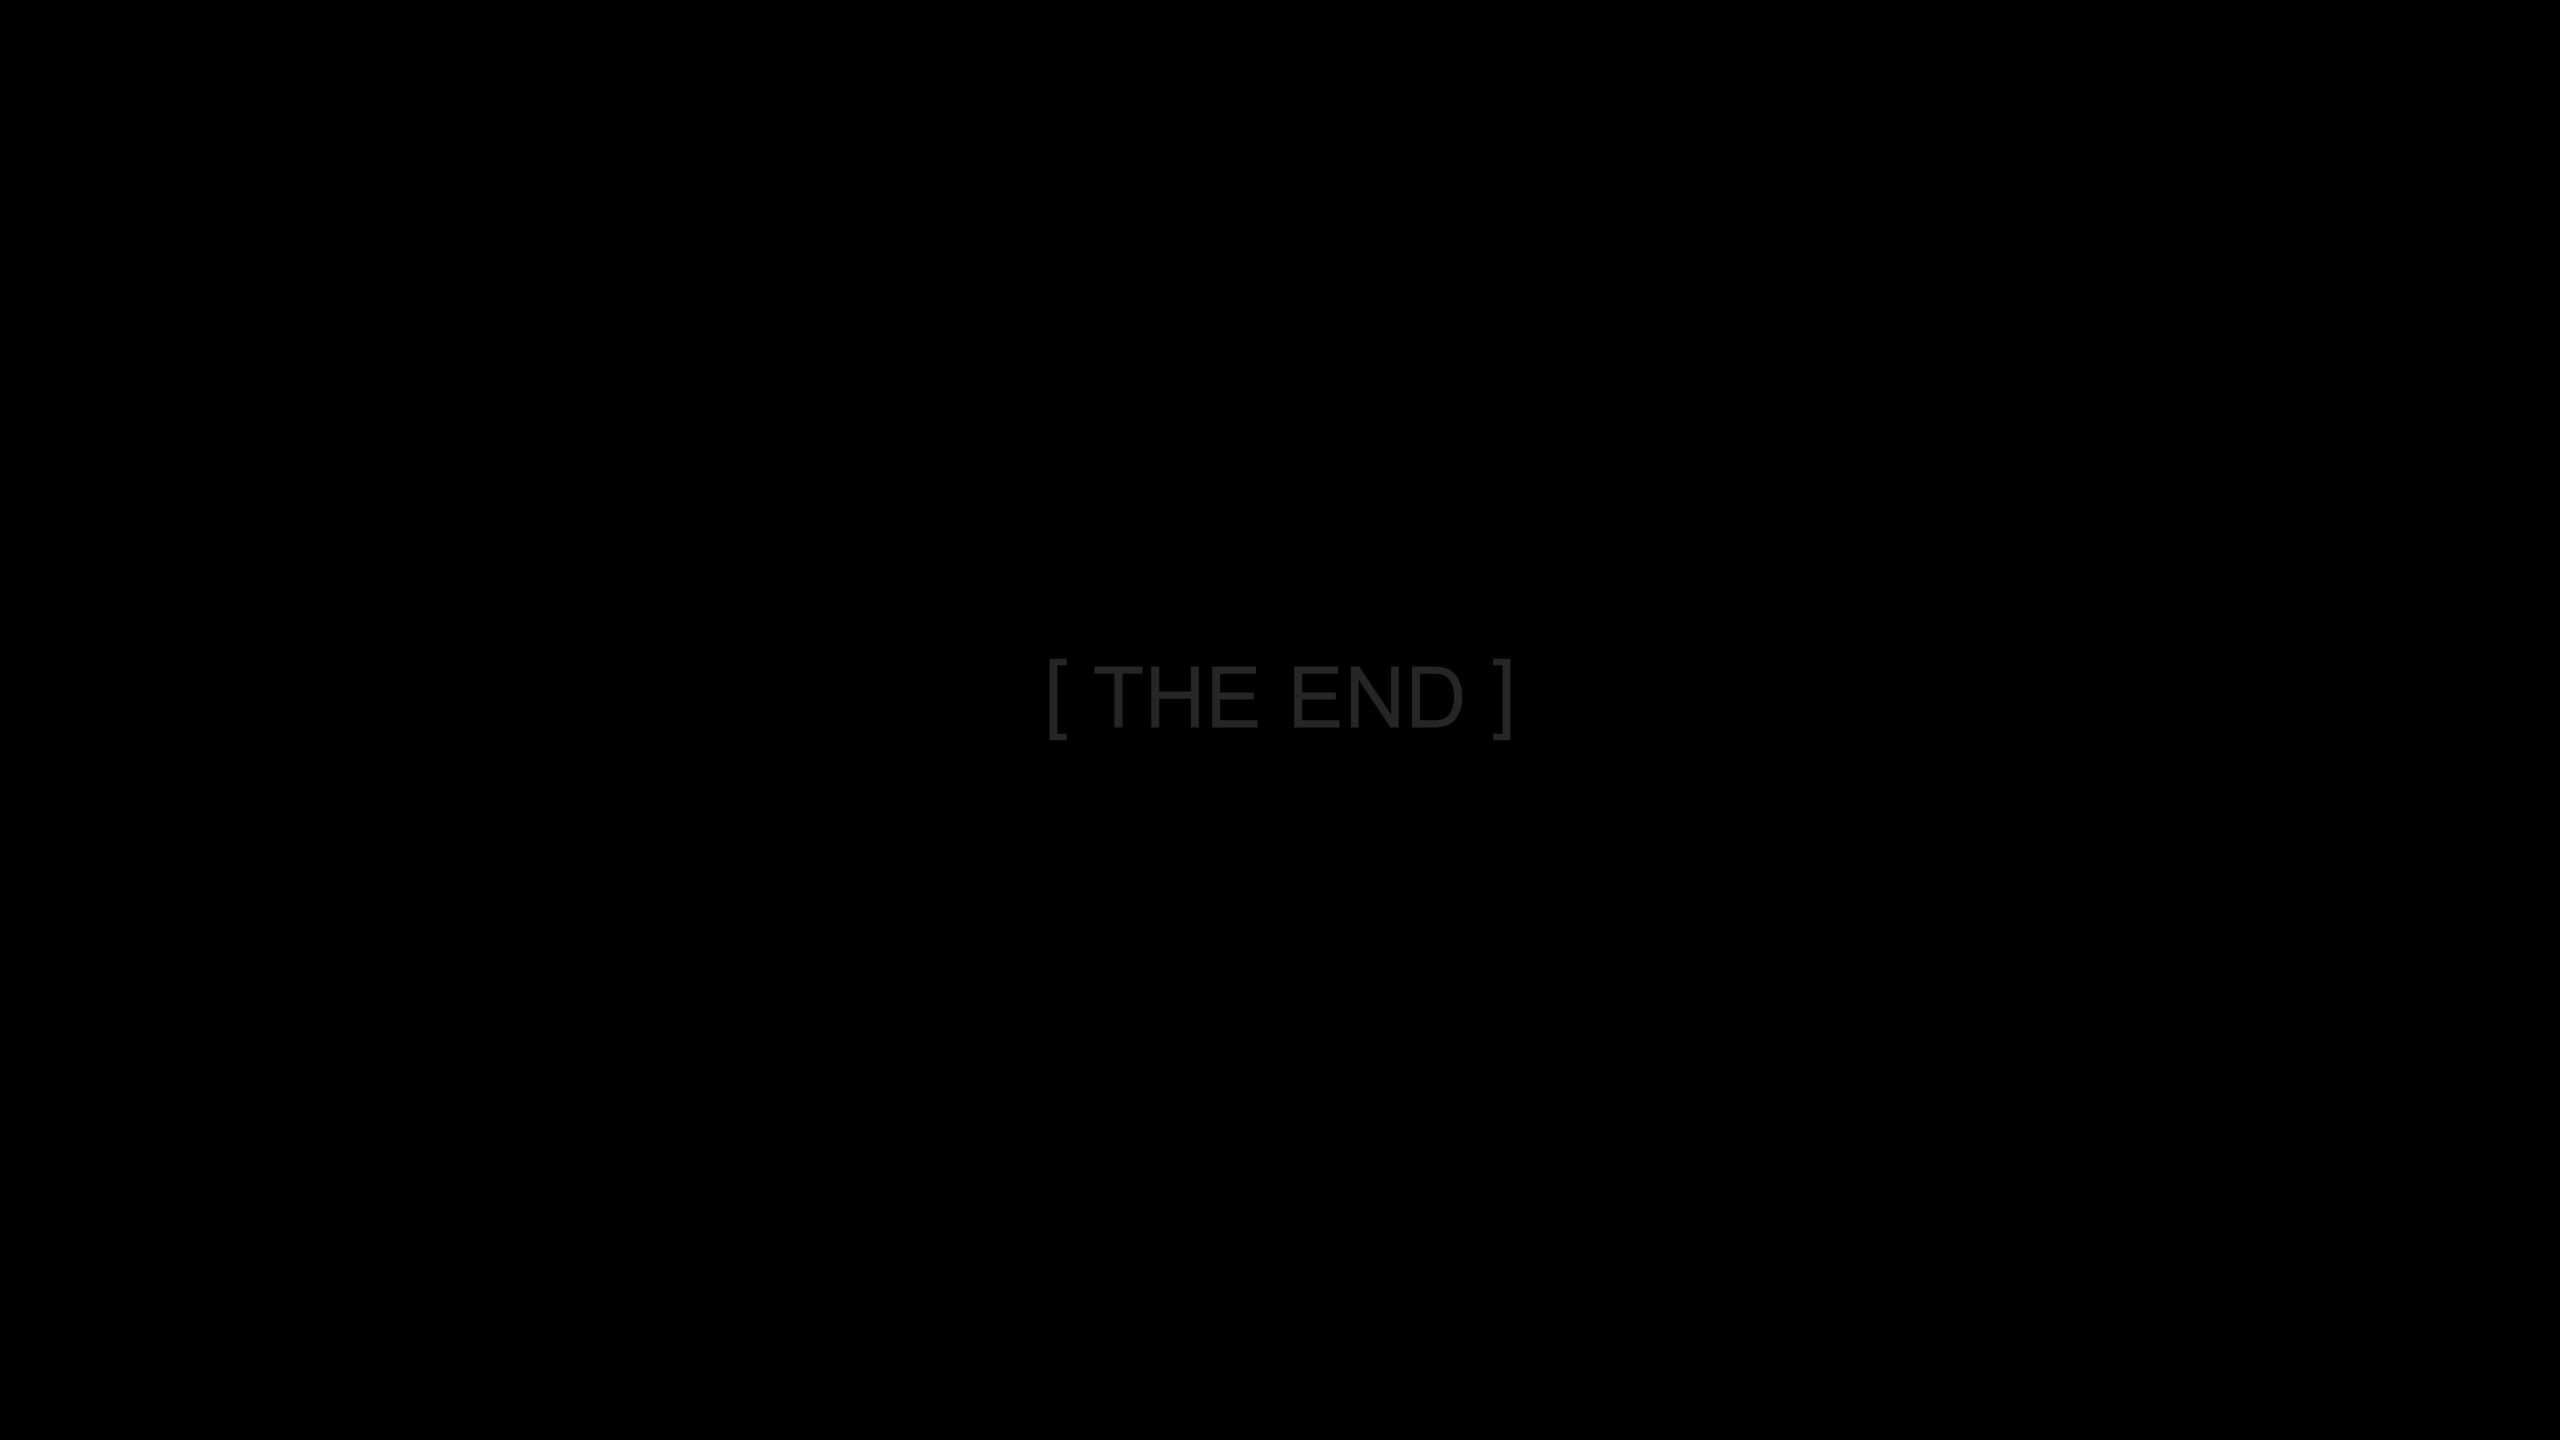 [ THE END ]